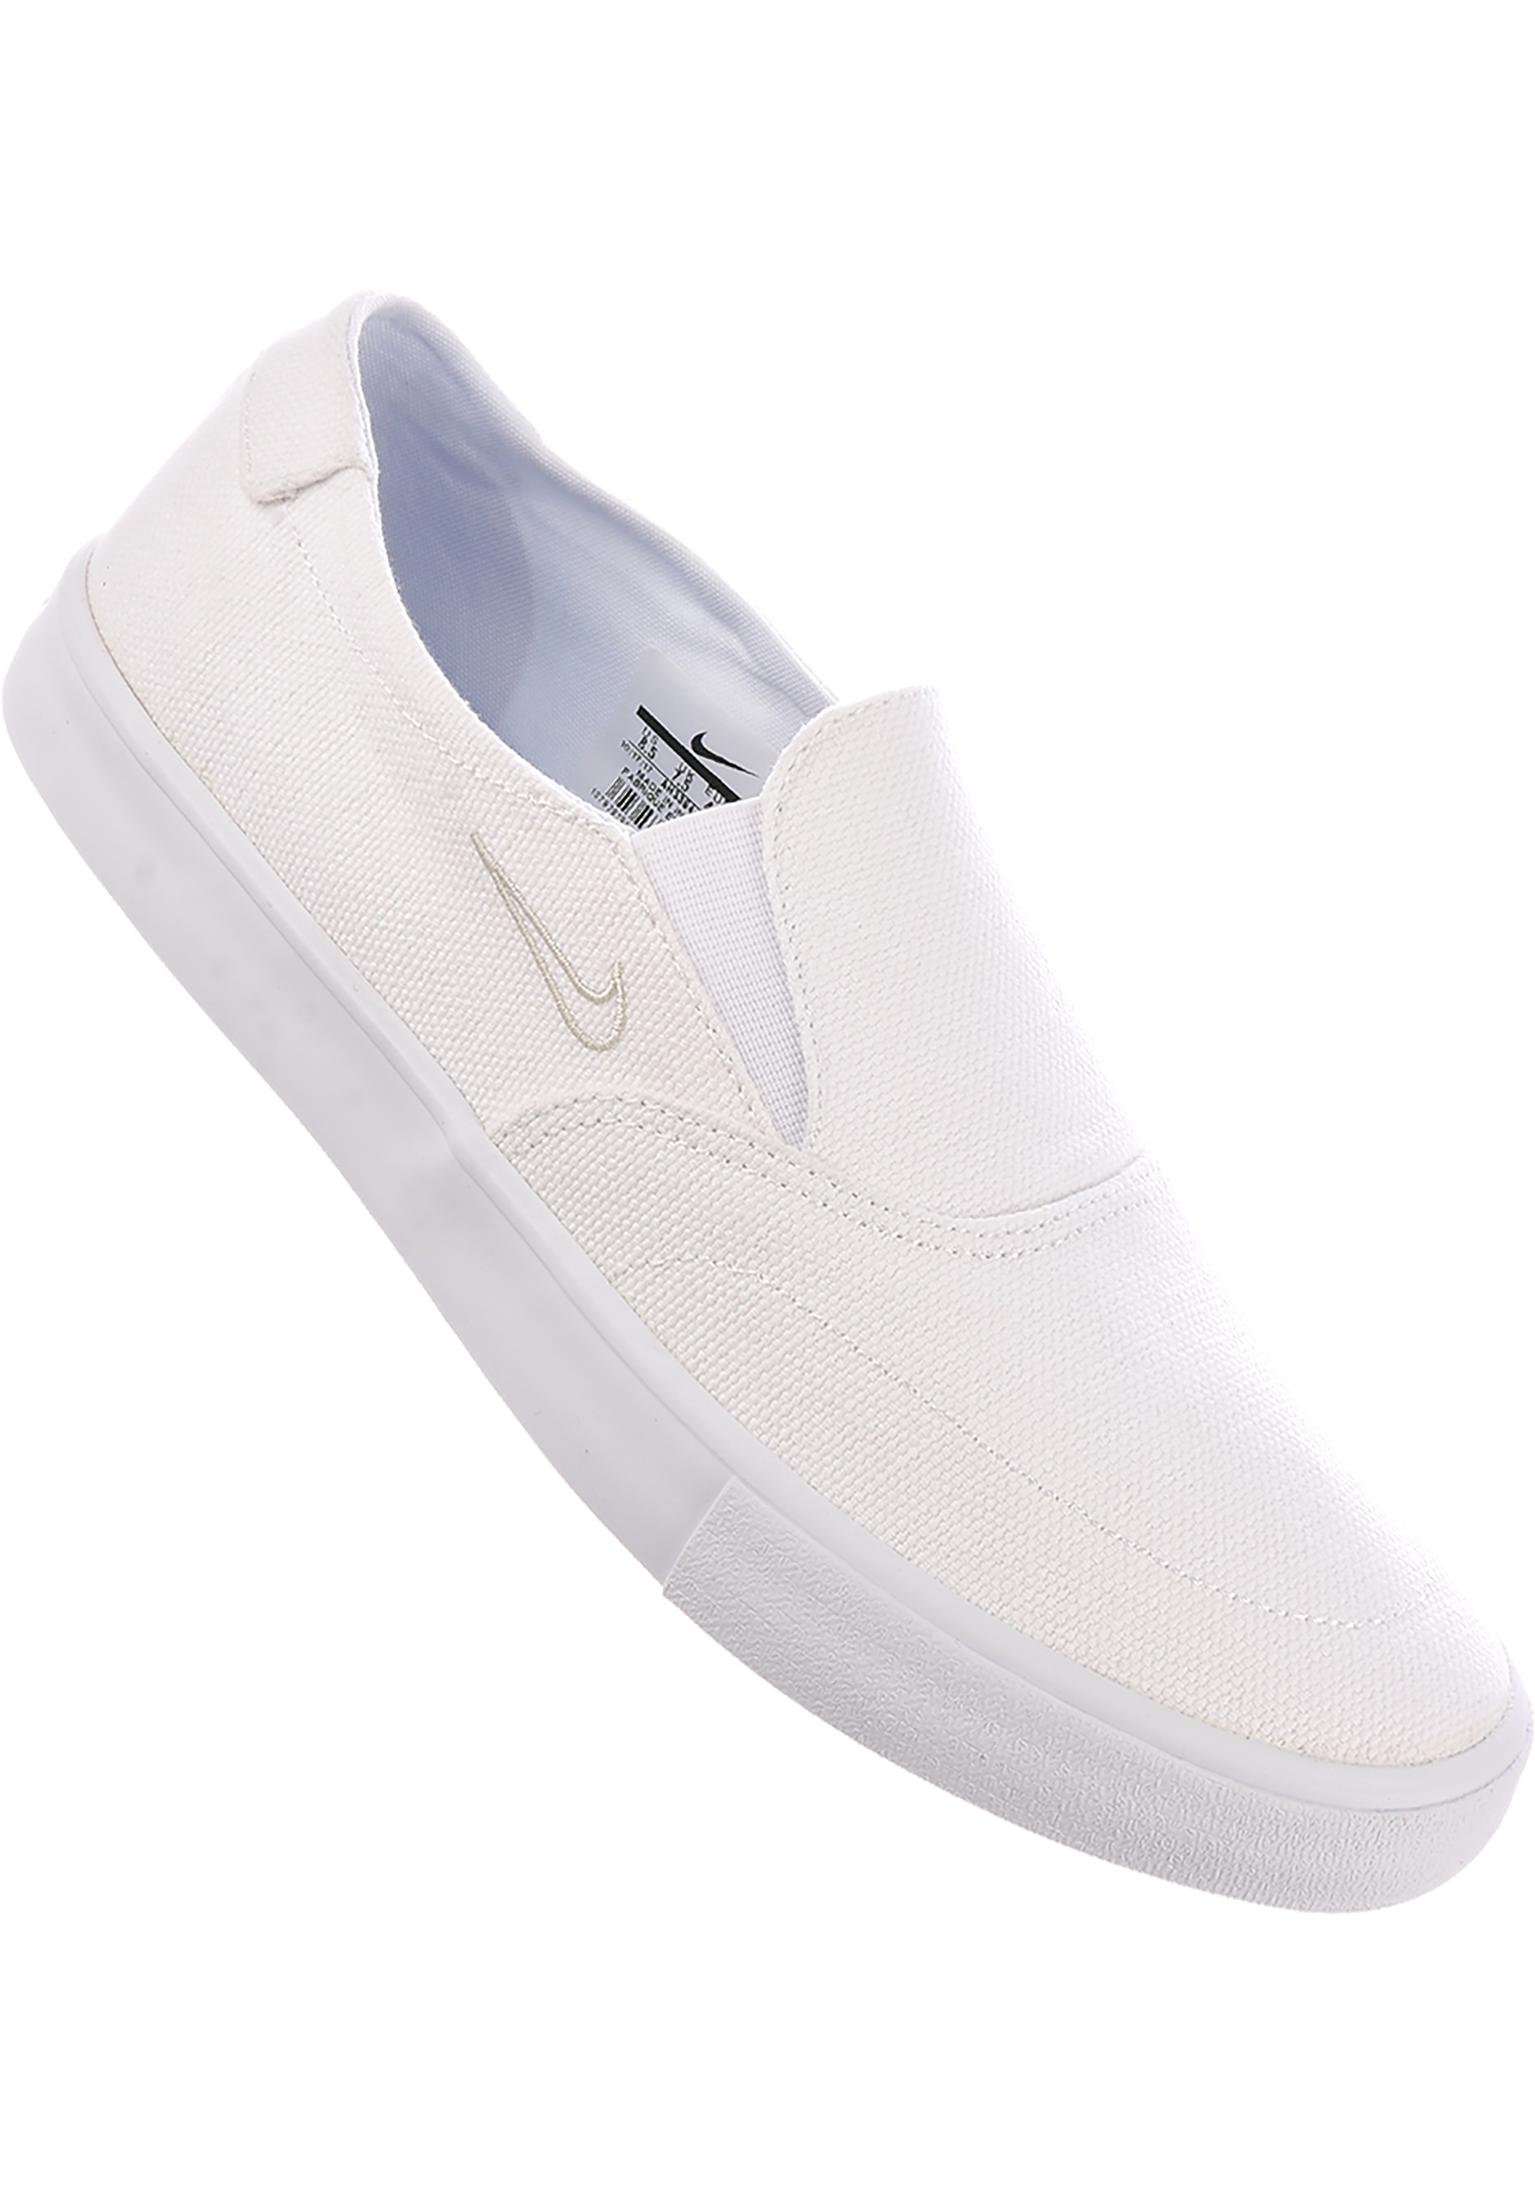 Solarsoft Portmore II Slip On Nike SB All Shoes in white-white for Men  3532efaaf